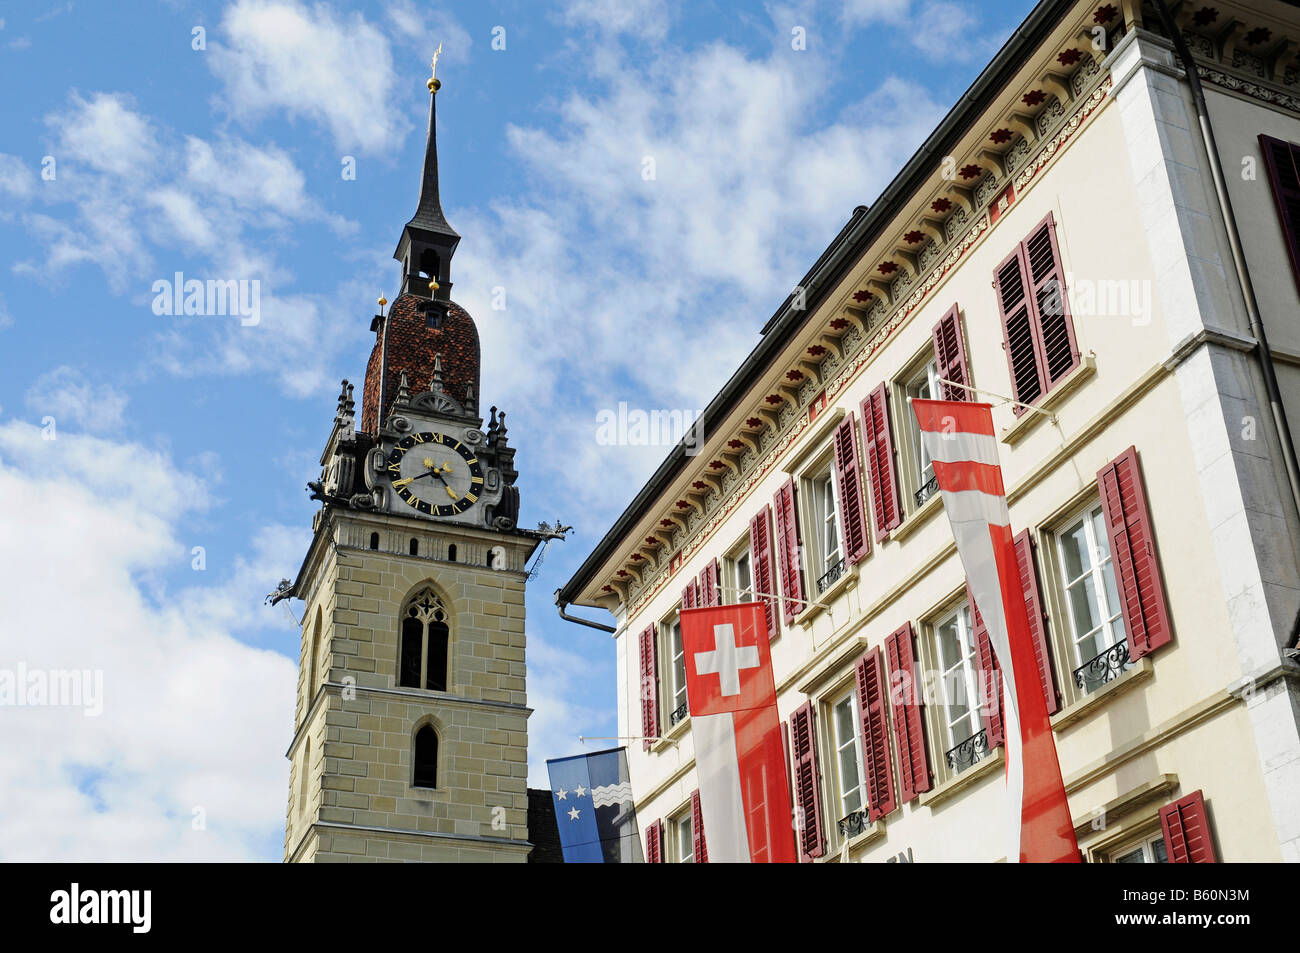 Steeple of the town church and a facade of a building with flags, Zofingen, Aargau, Switzerland, Europe - Stock Image